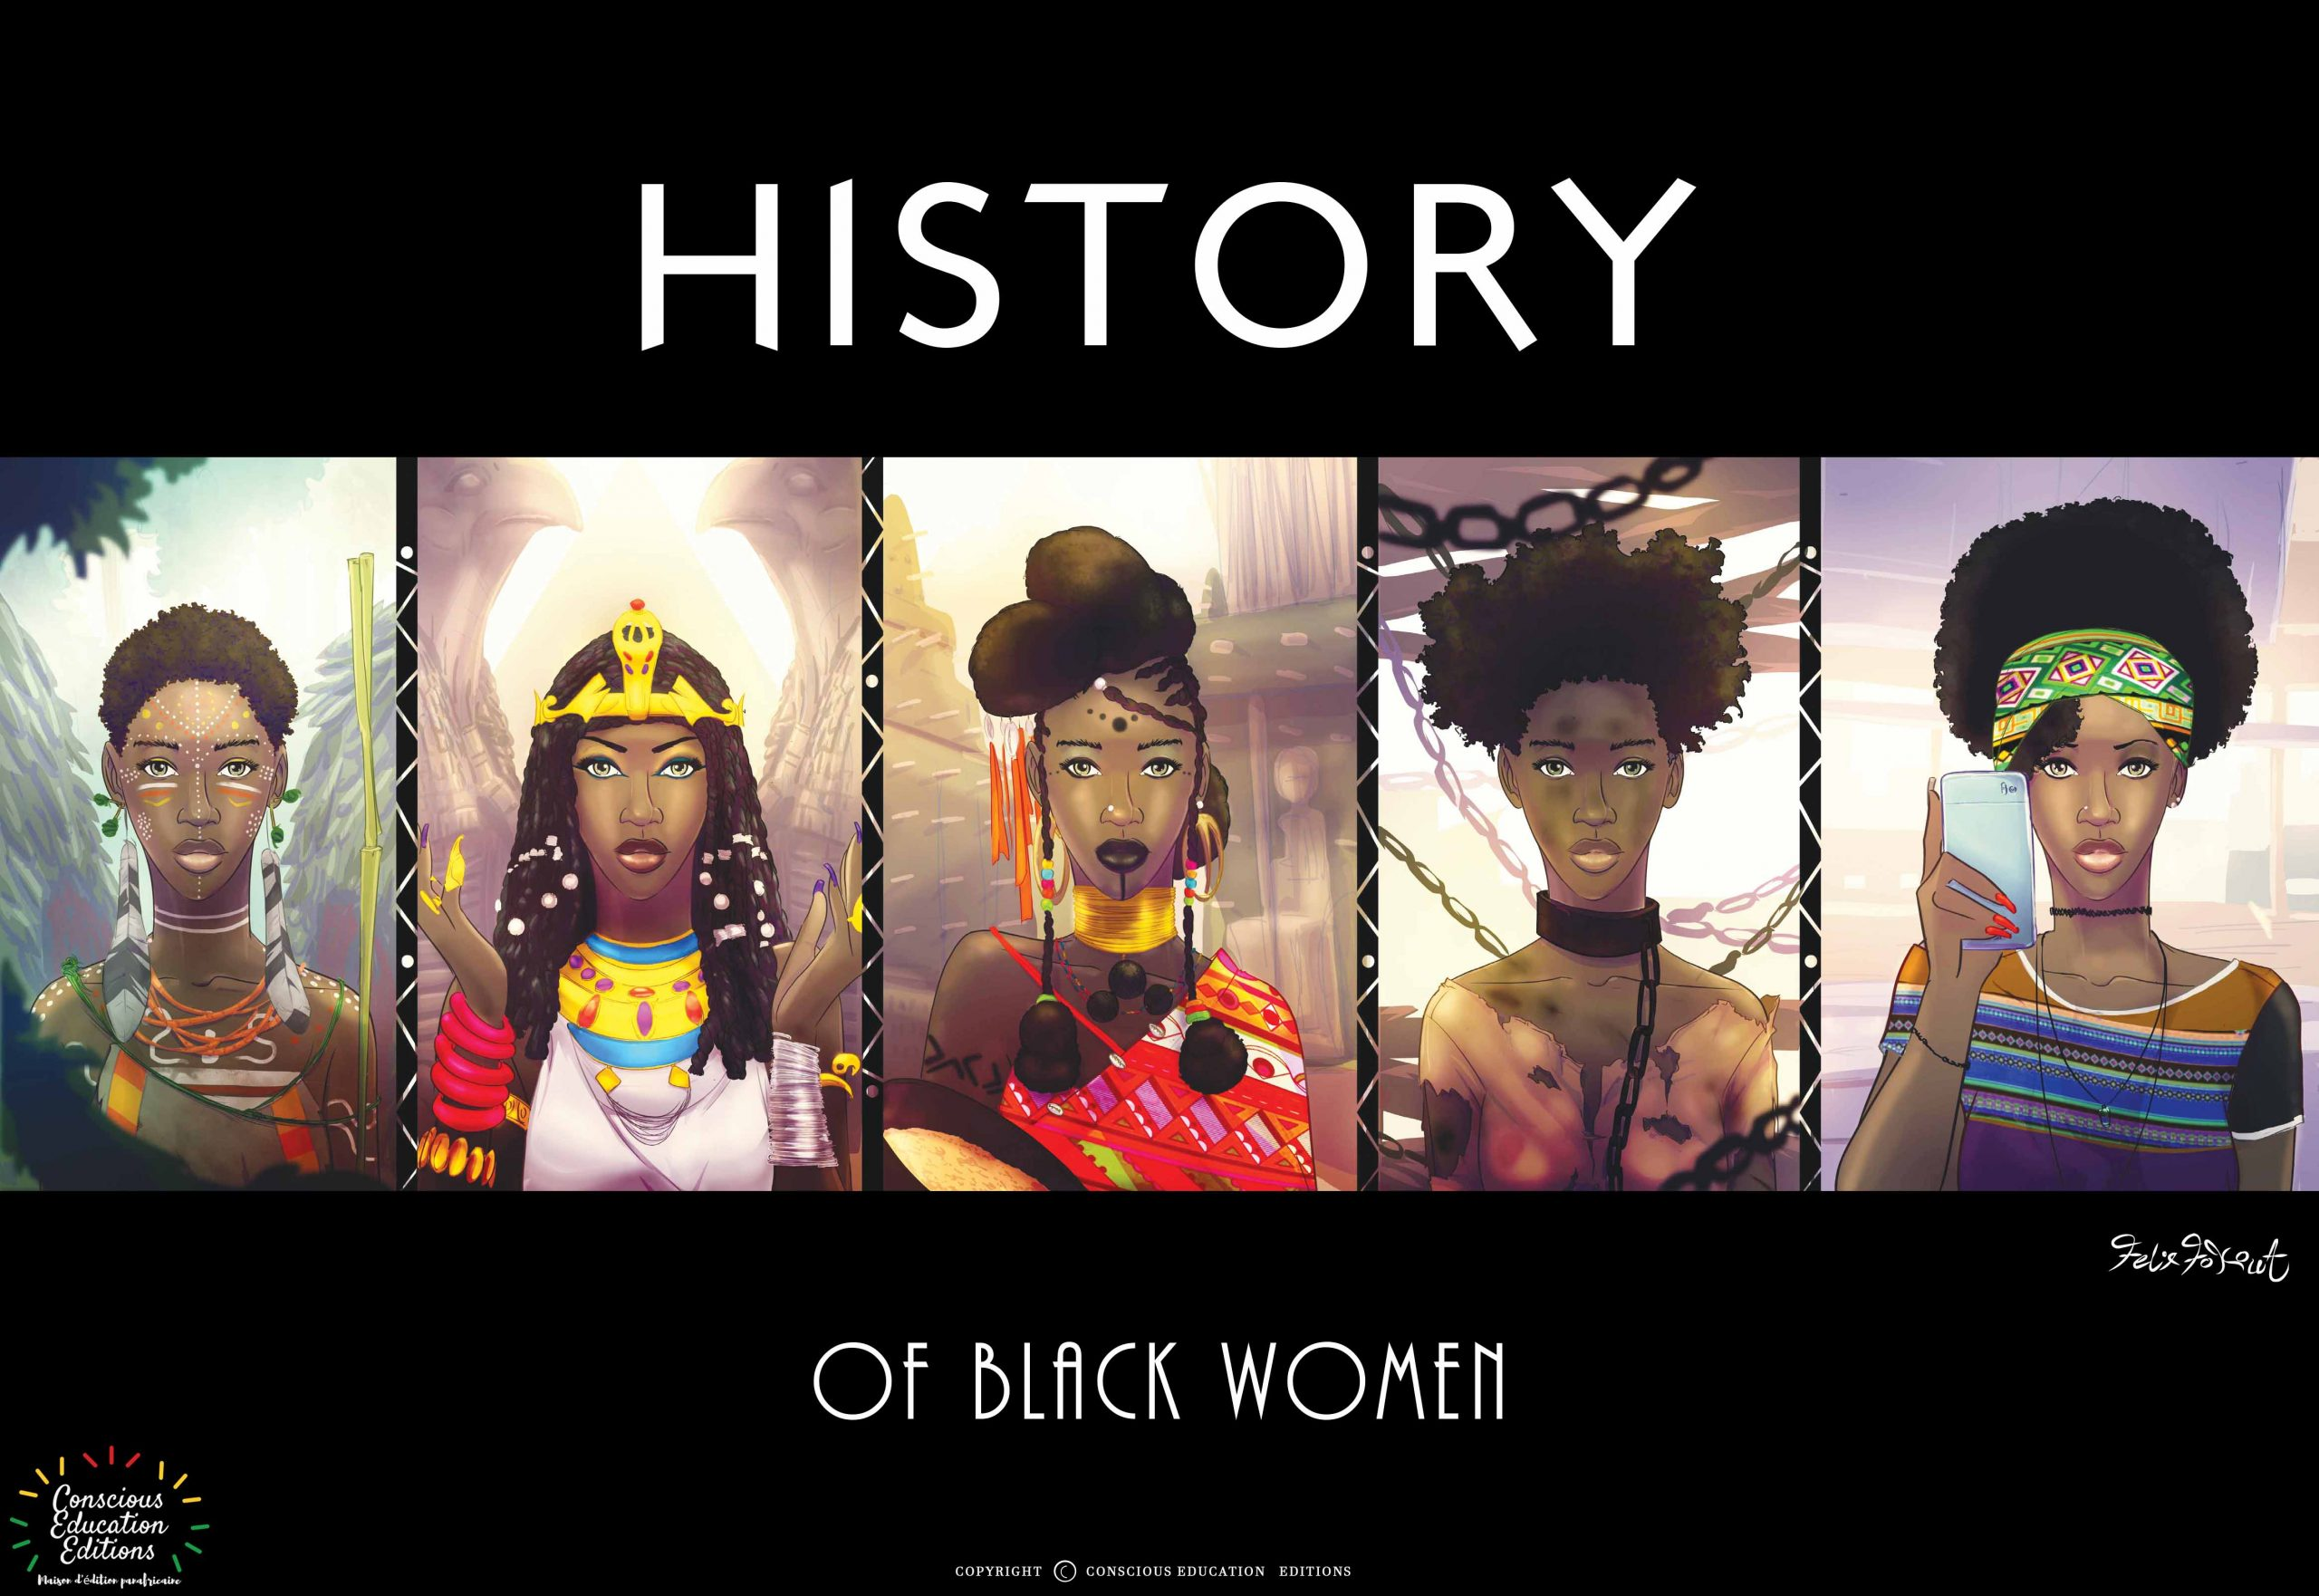 HISTORY OF Black women-Afro